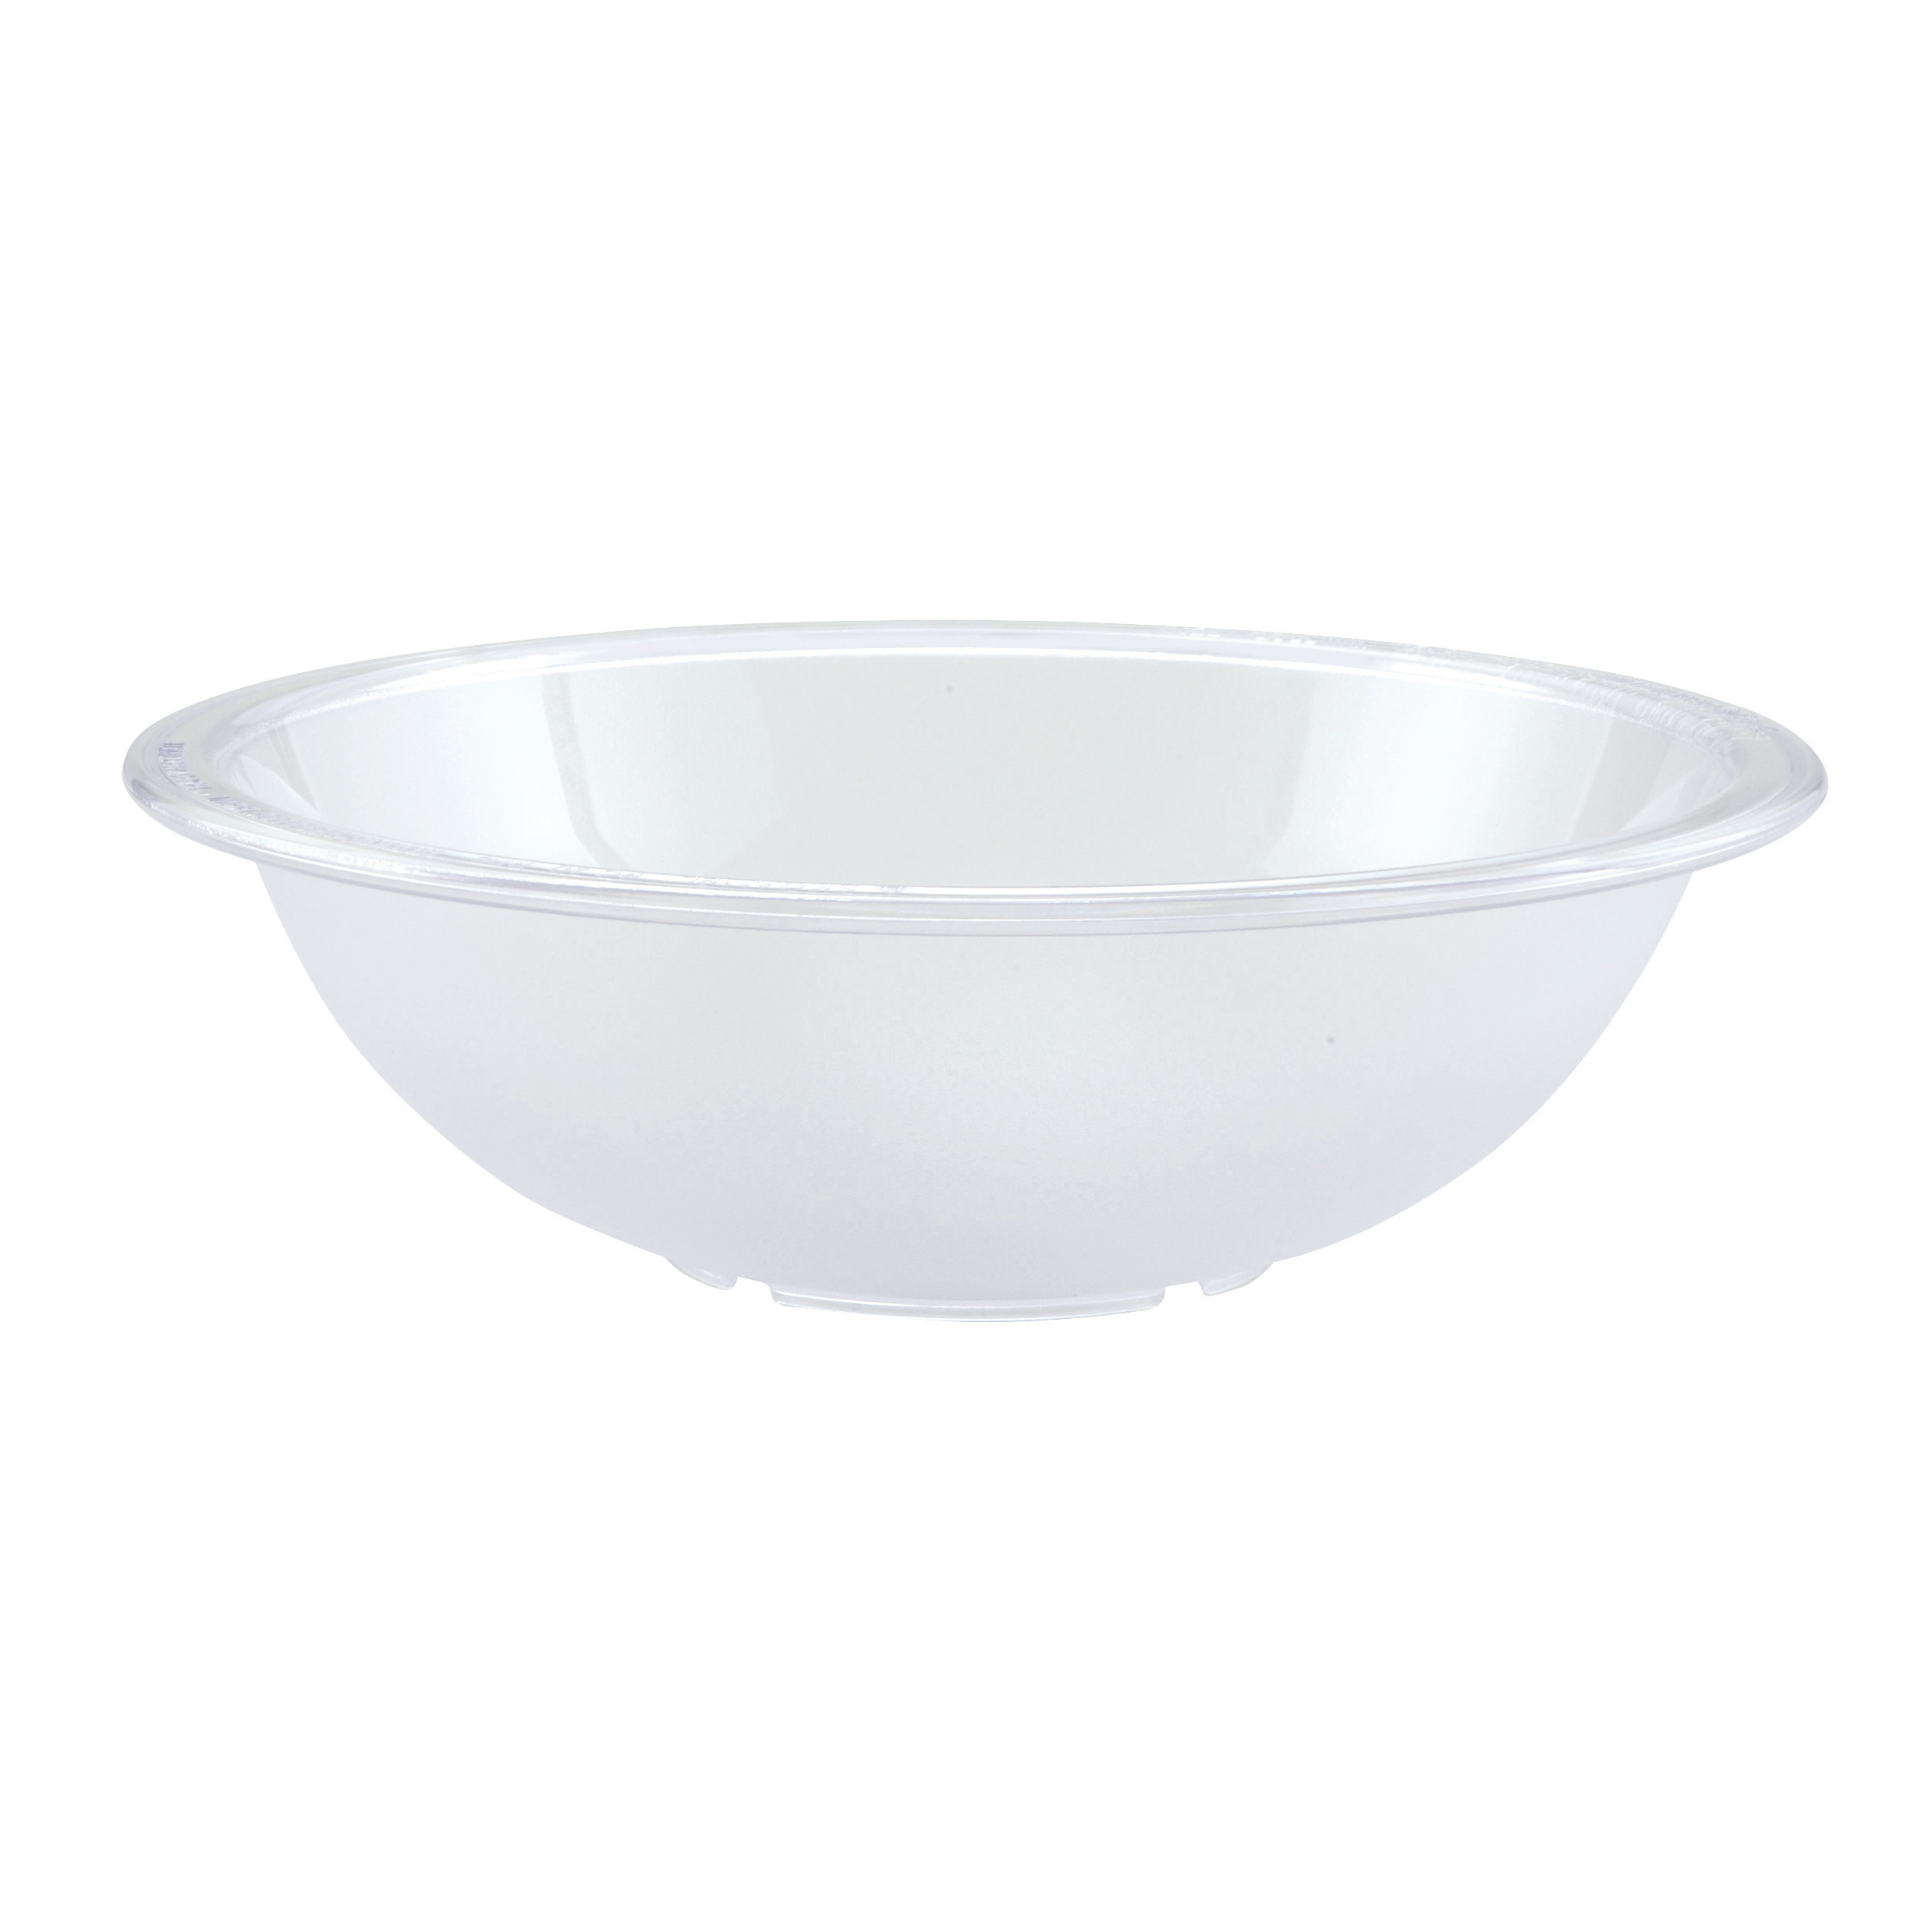 Winco PBB-10 soup salad pasta cereal bowl, plastic